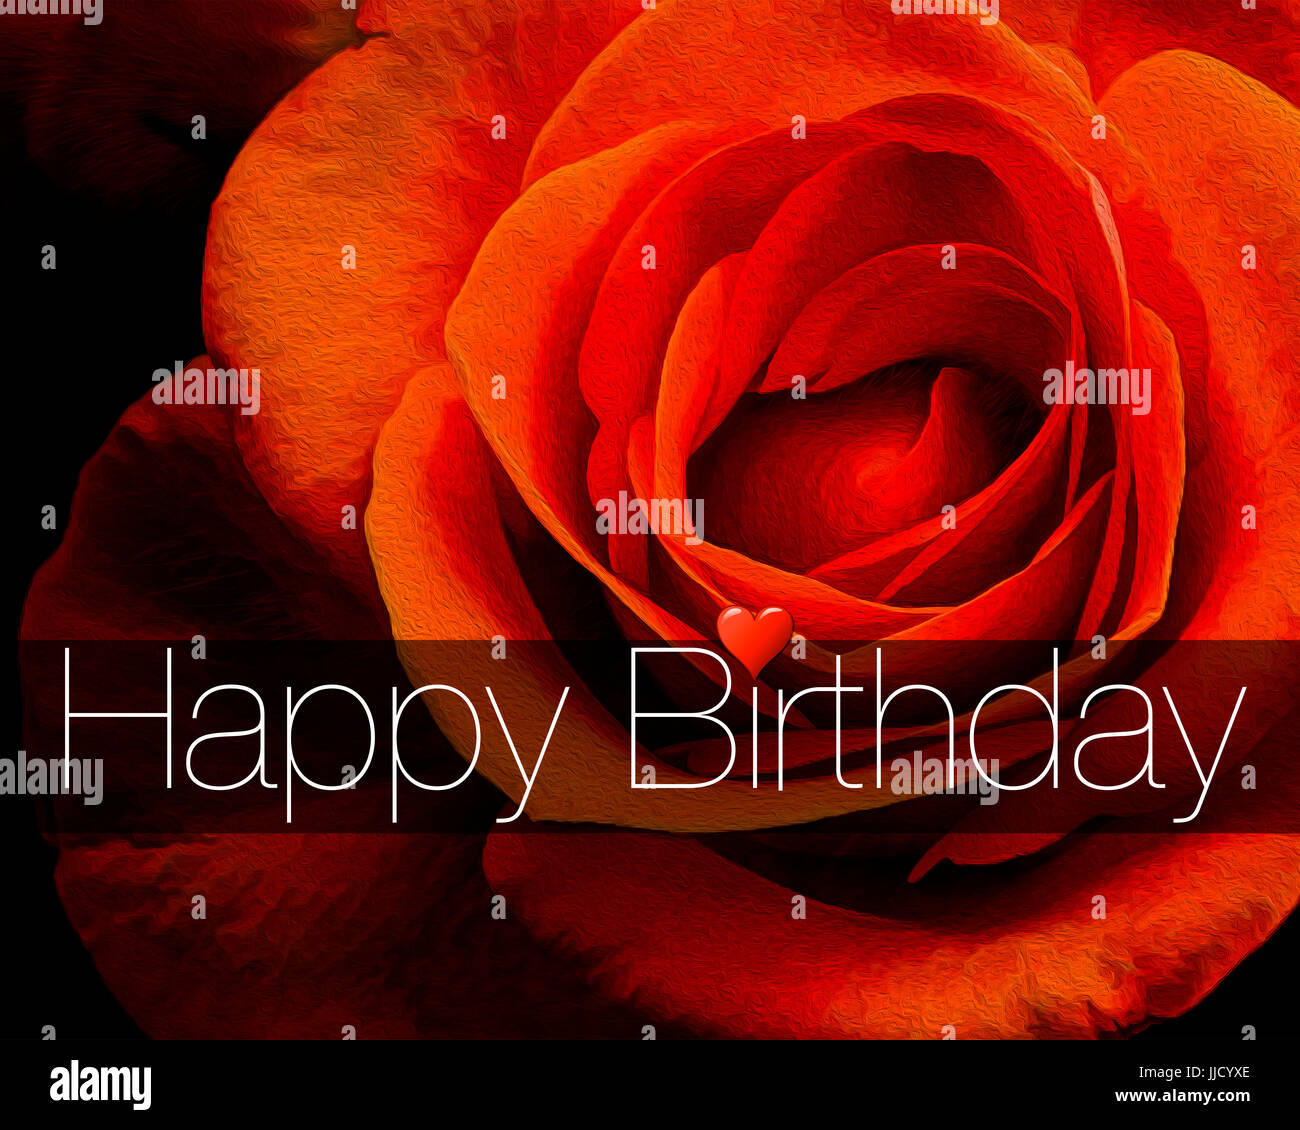 DIGITAL ART: Happy Birthday Card Design - Stock Image